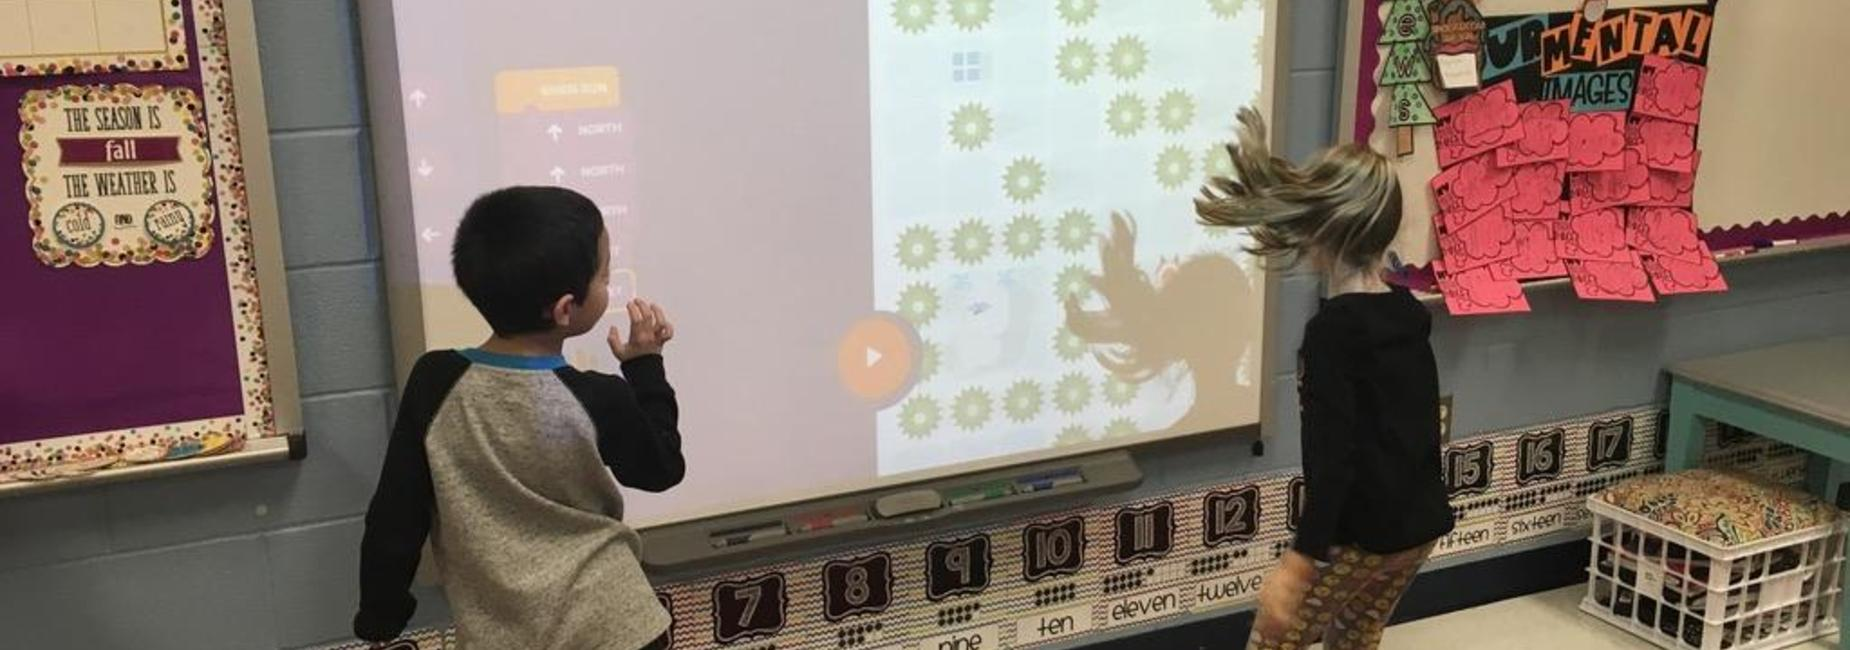 Chamberlin Elementary students at Smart Board